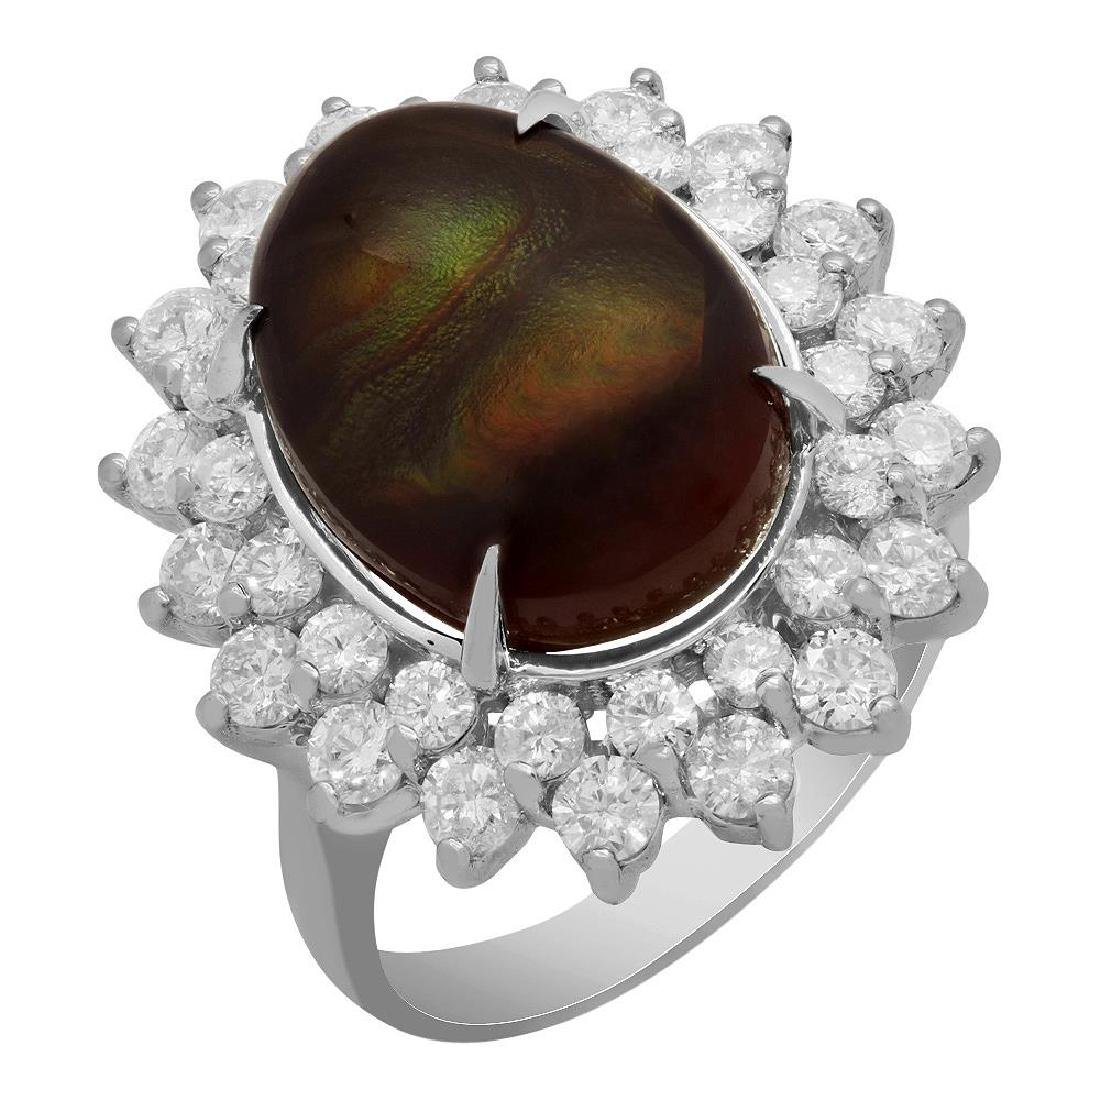 14k White Gold 4.18ct Fire Agate 1.99ct Diamond Ring